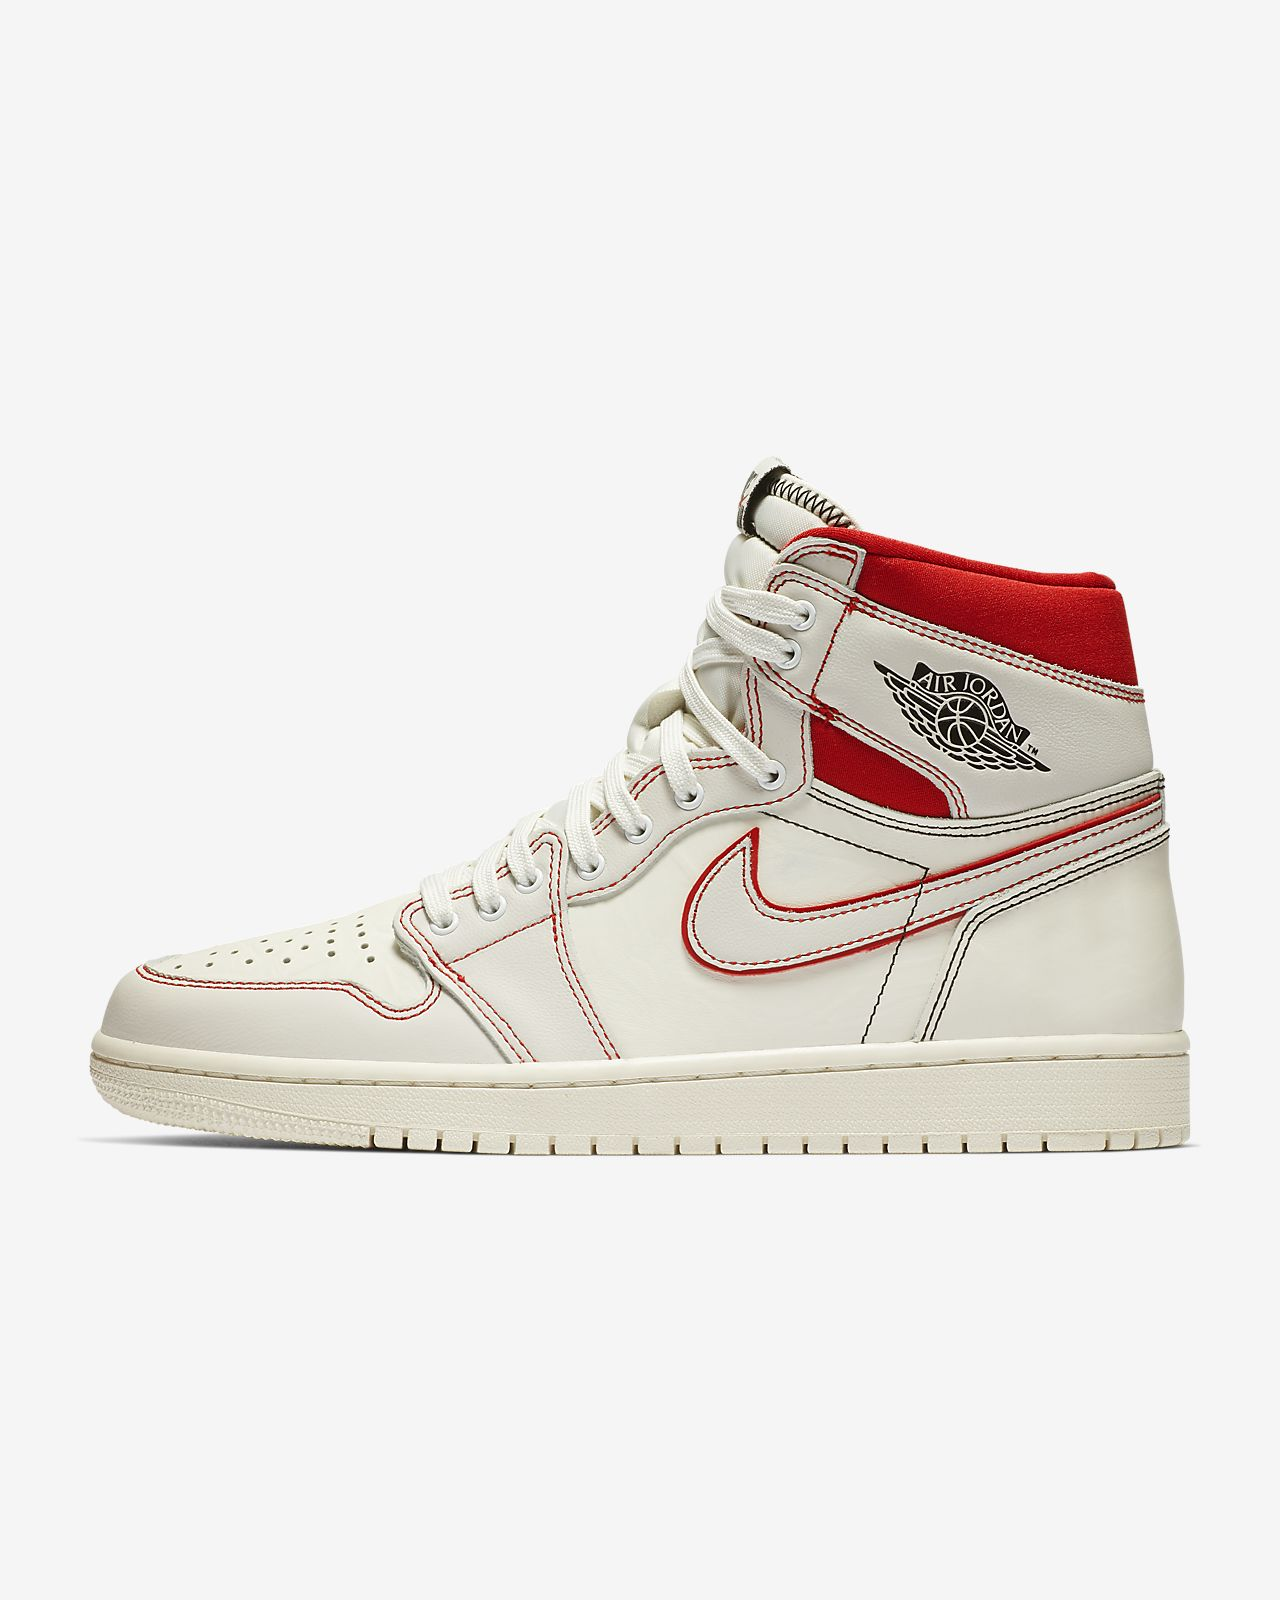 520fbac78bc6 Air Jordan 1 Retro High OG Shoe. Nike.com